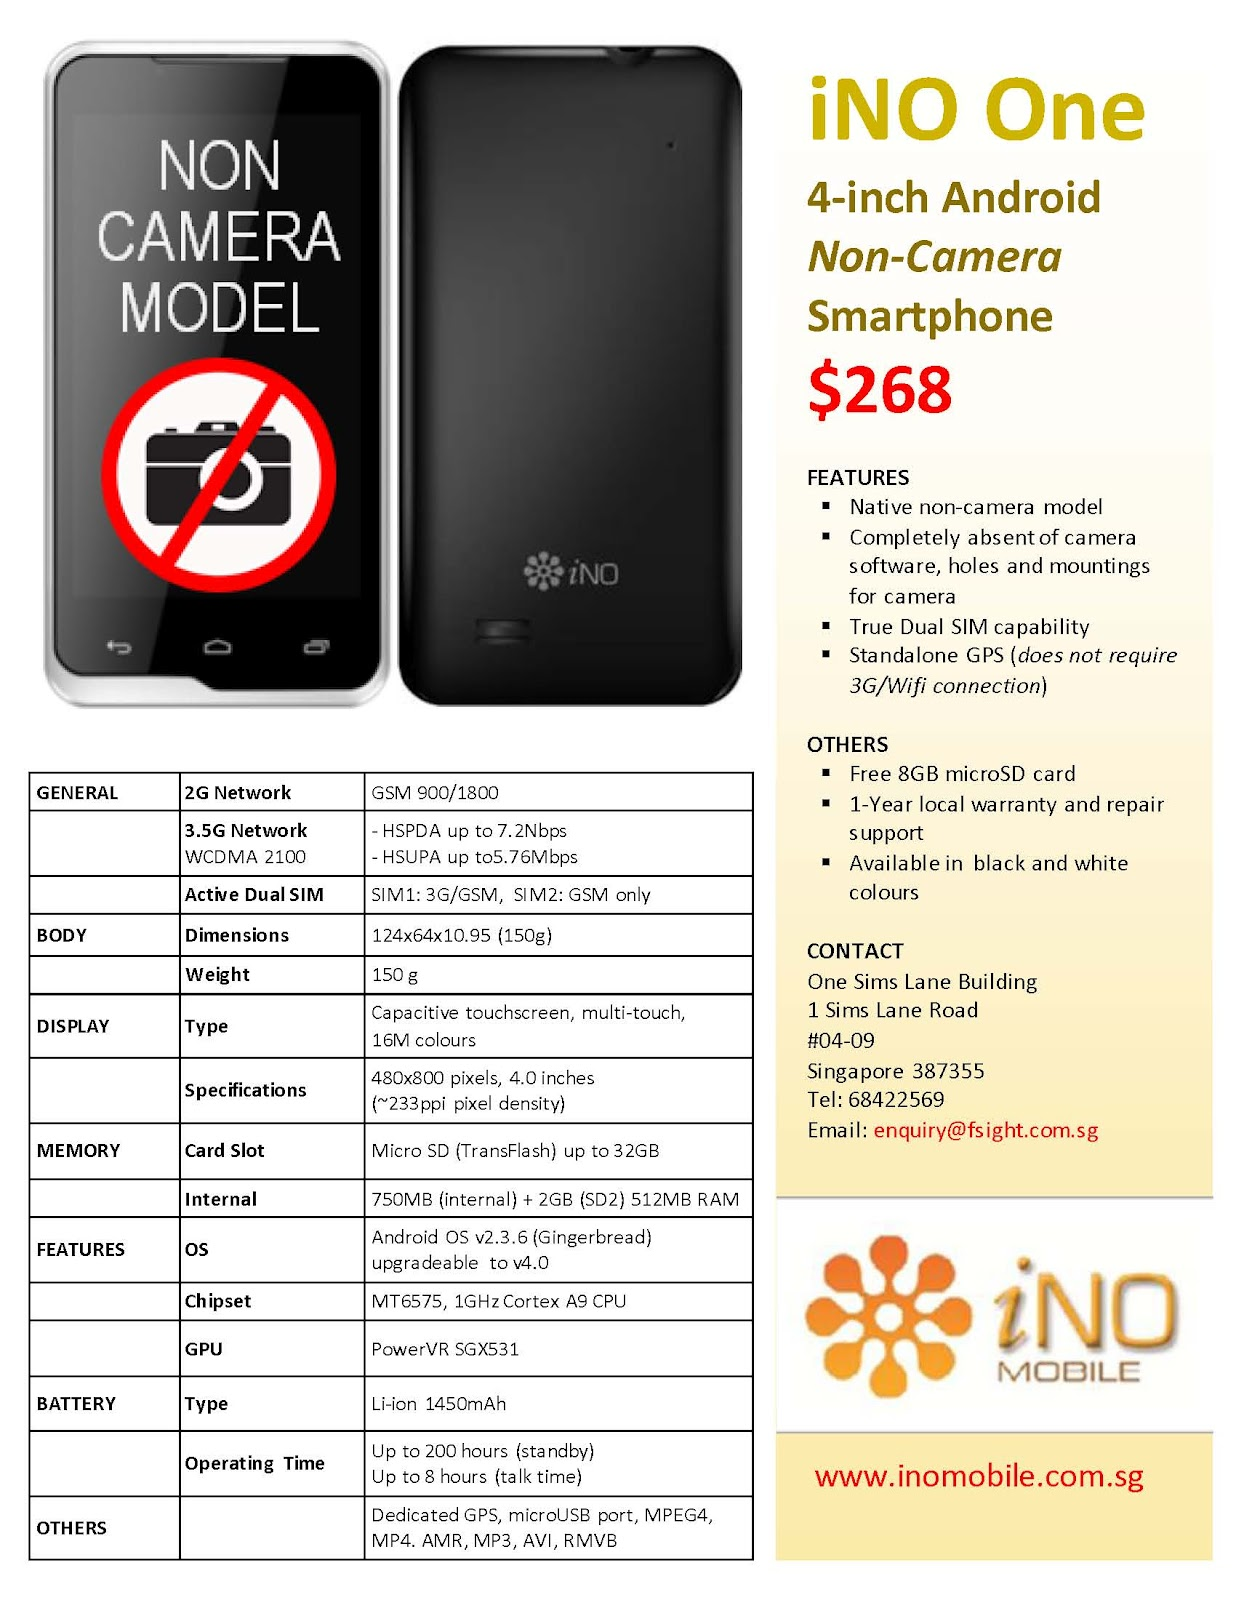 WTS: USED INO ONE NON CAMERA PHONE FOR $50